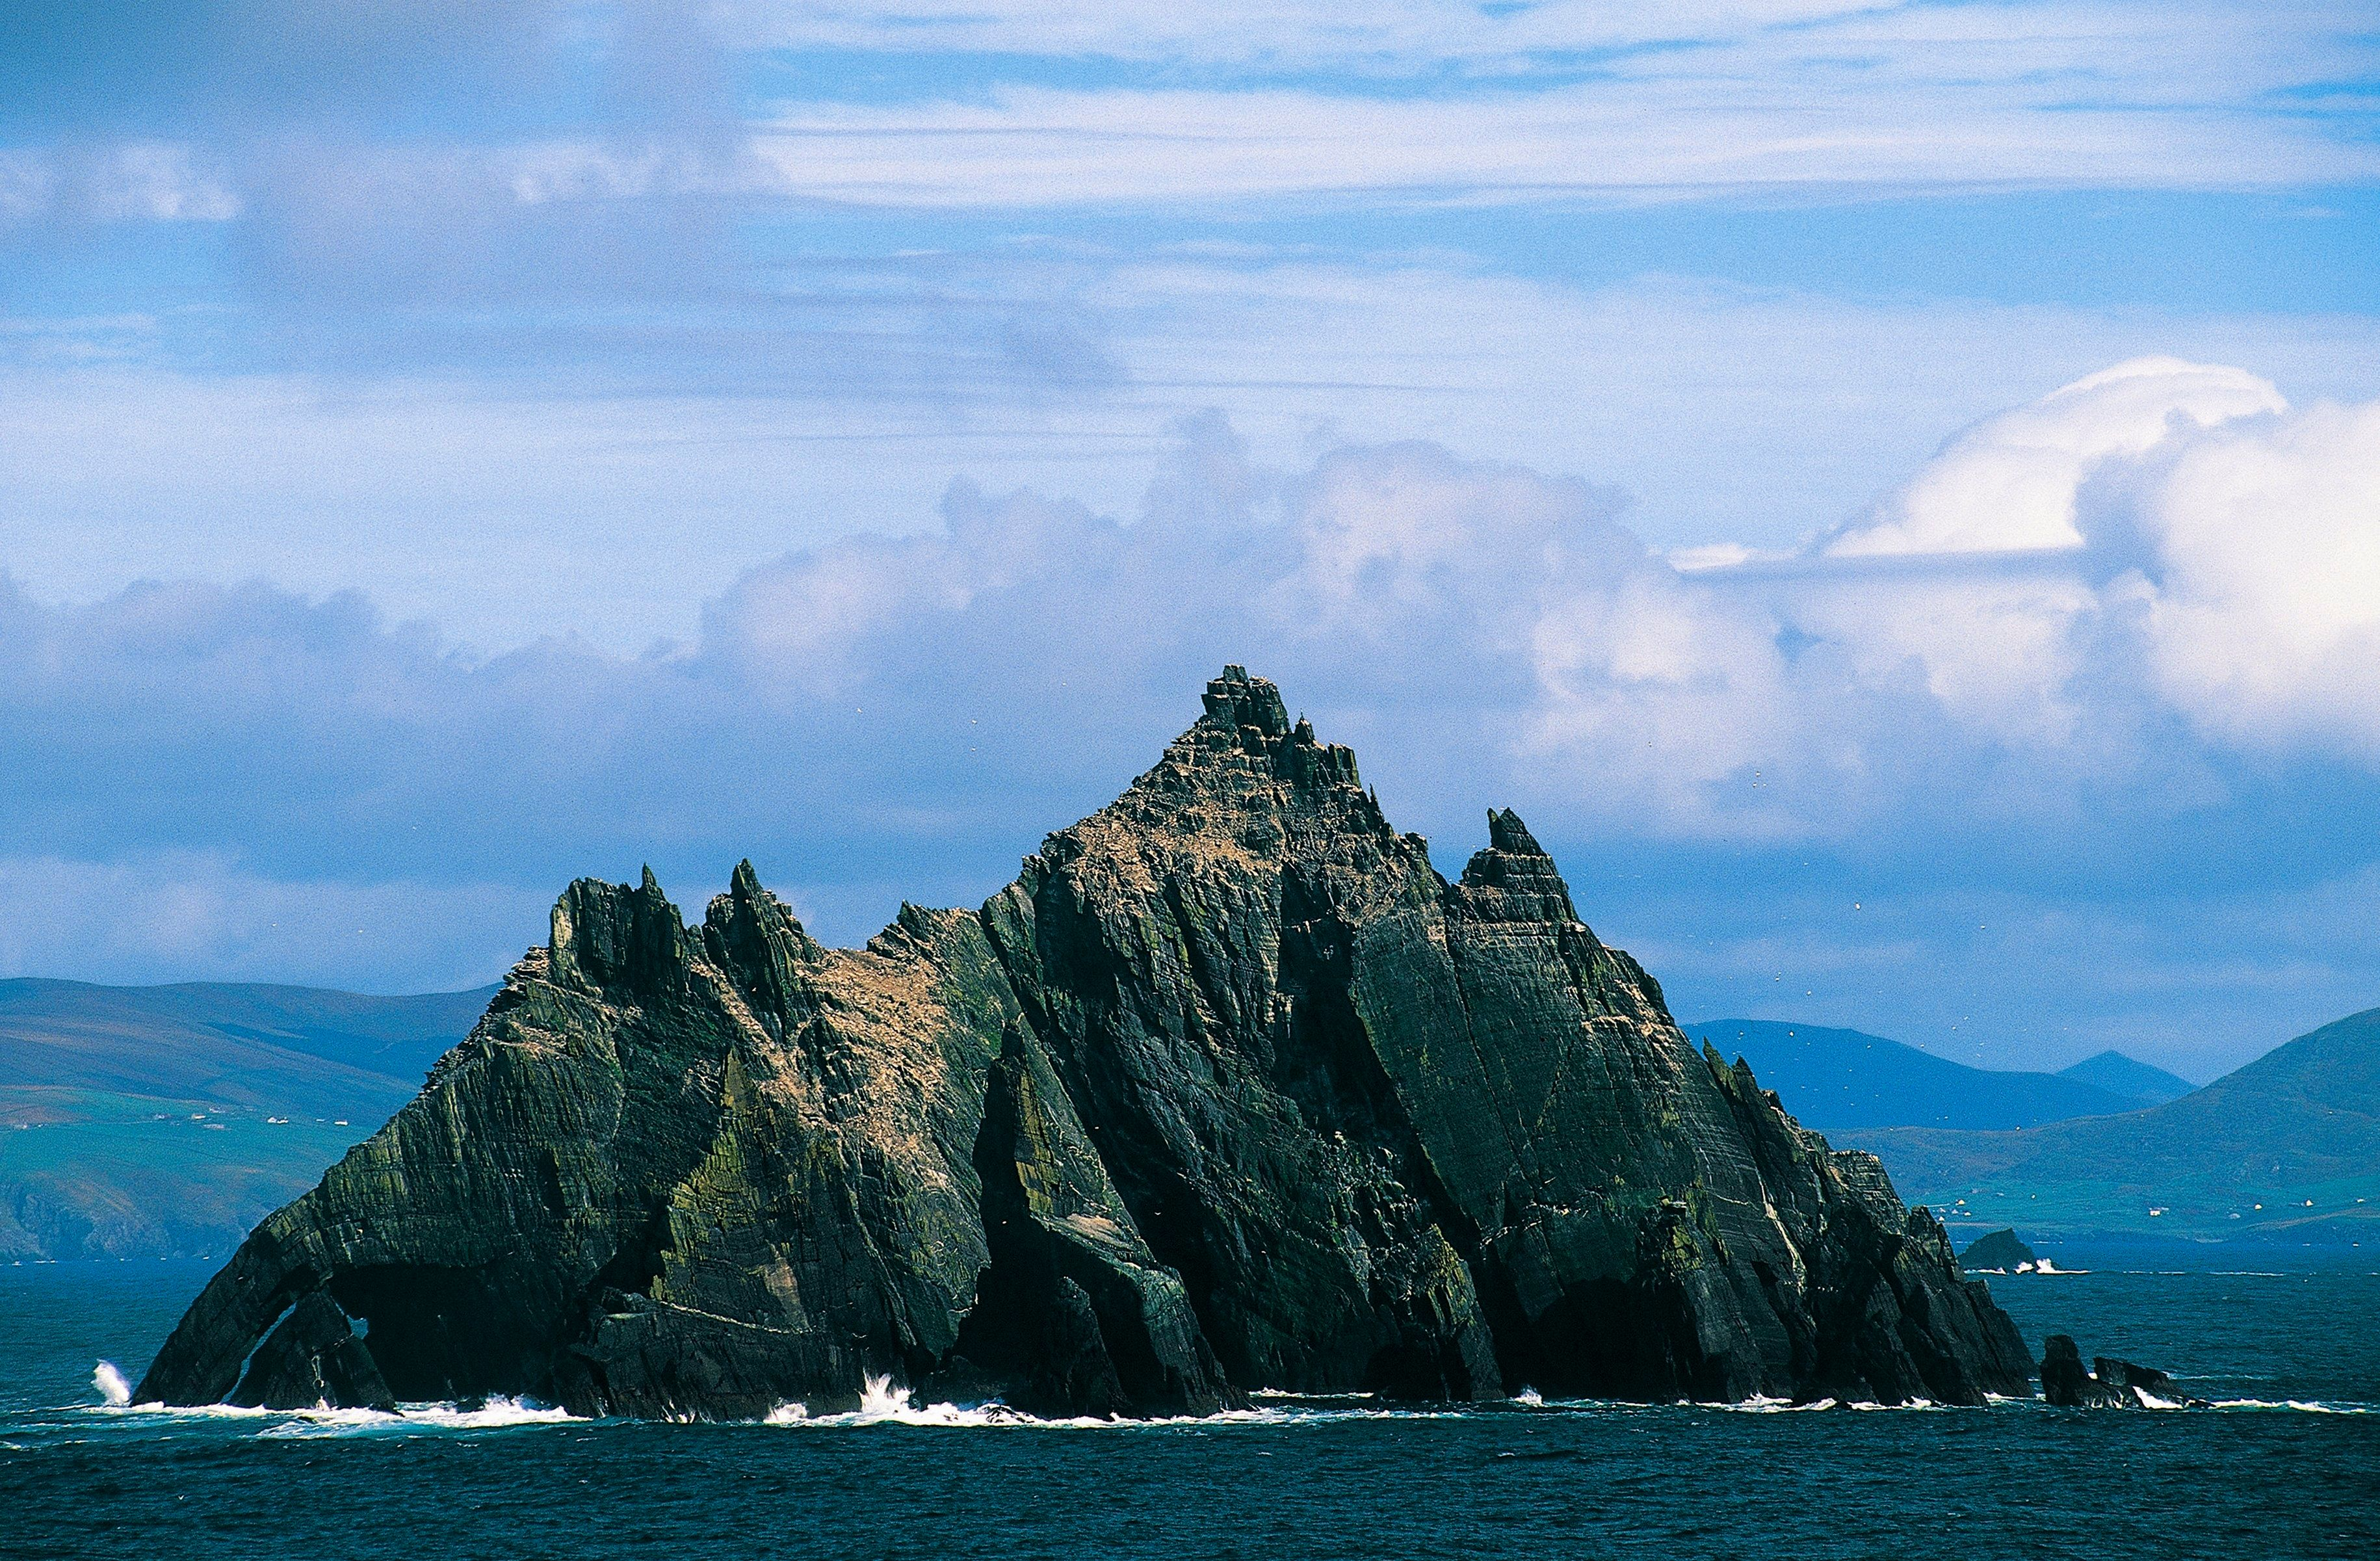 The small island of Skellig Michael, part of County Kerry, Ireland.